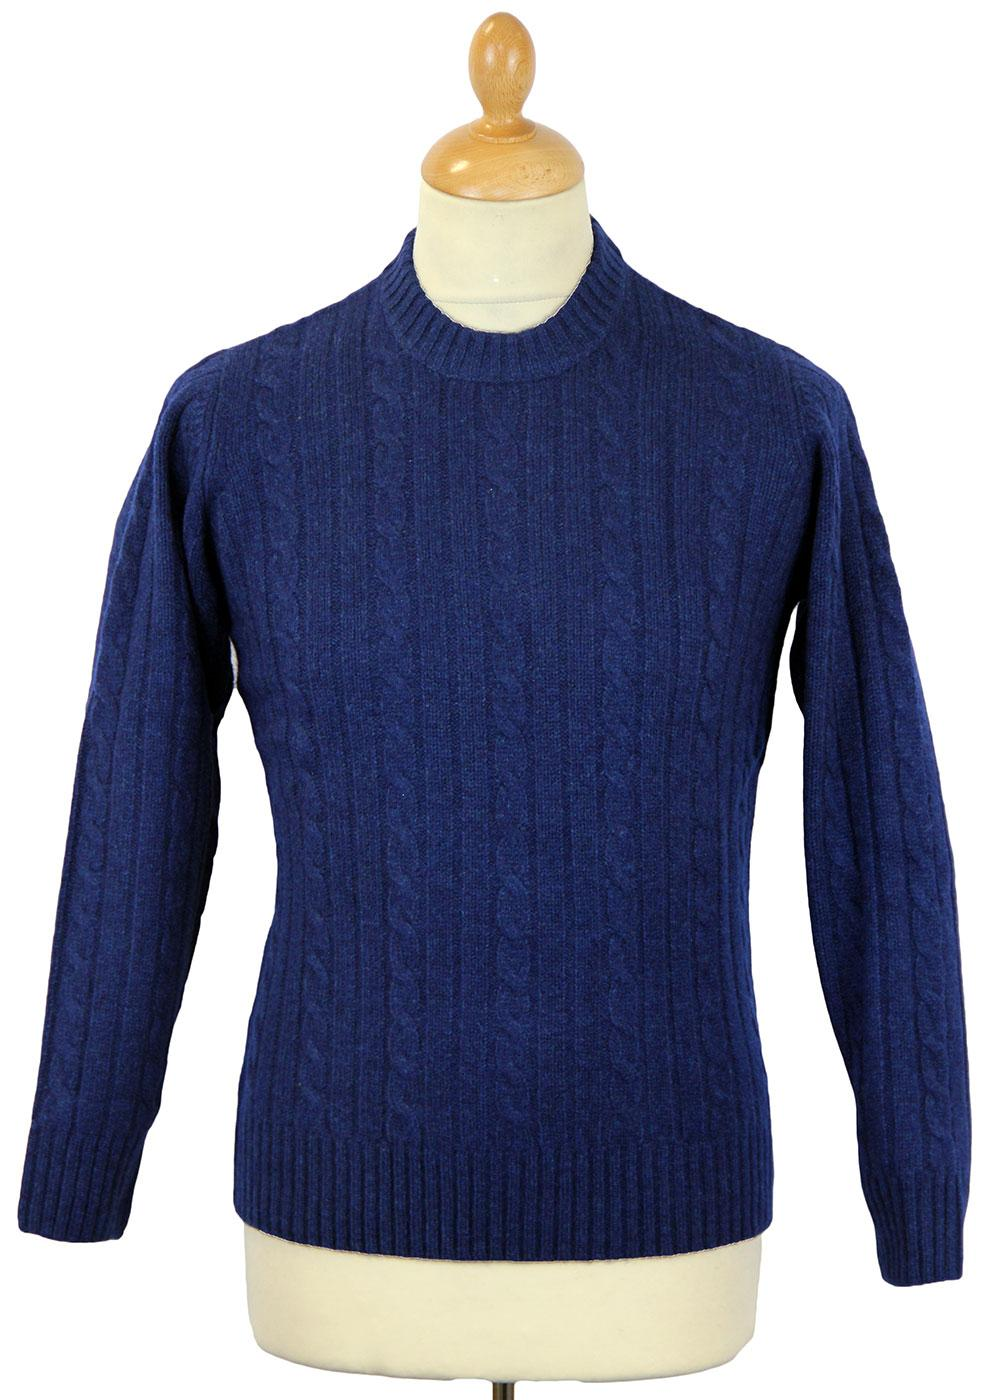 Rathmell ALAN PAINE Lambswool Cable Knit Jumper I